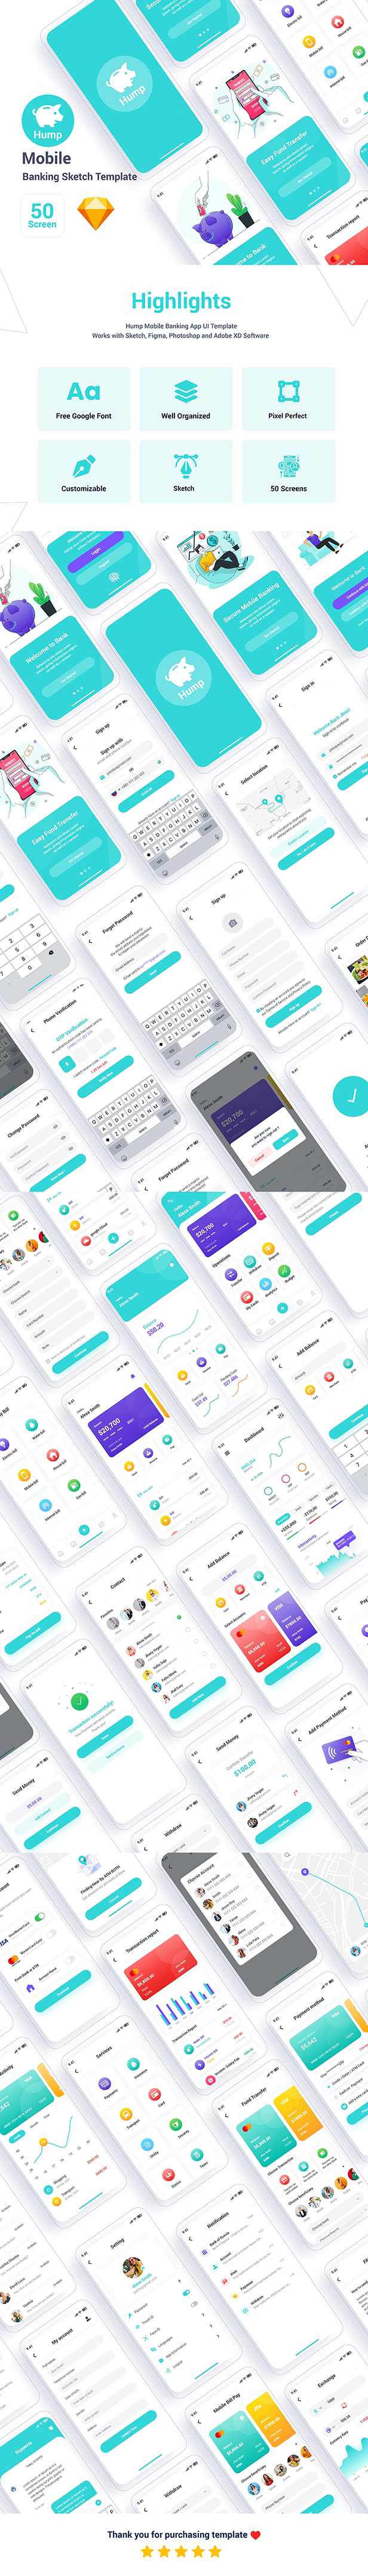 Hump – Mobile Banking Sketch Template - 1